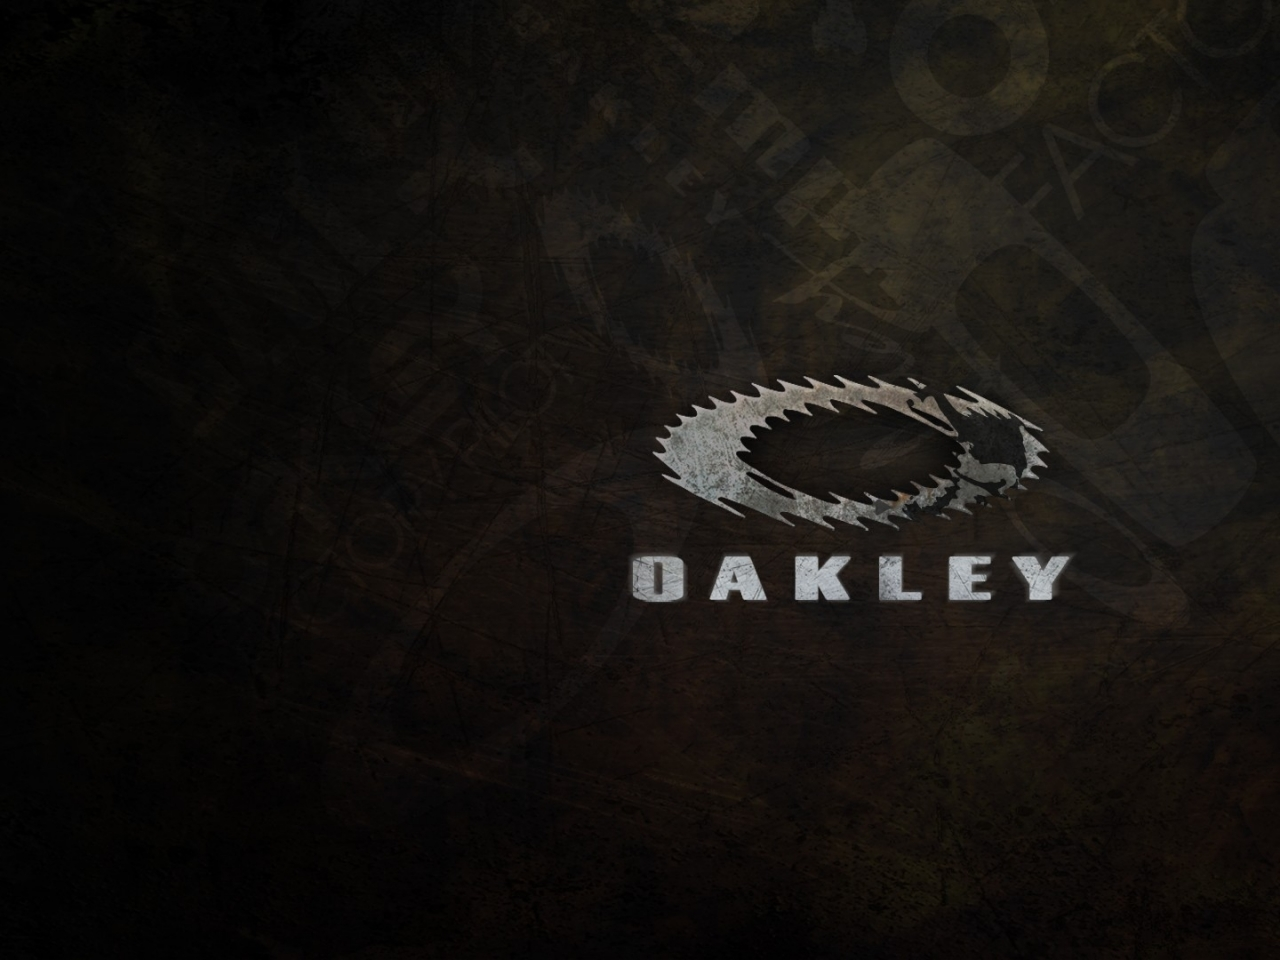 Oakley Wallpaper